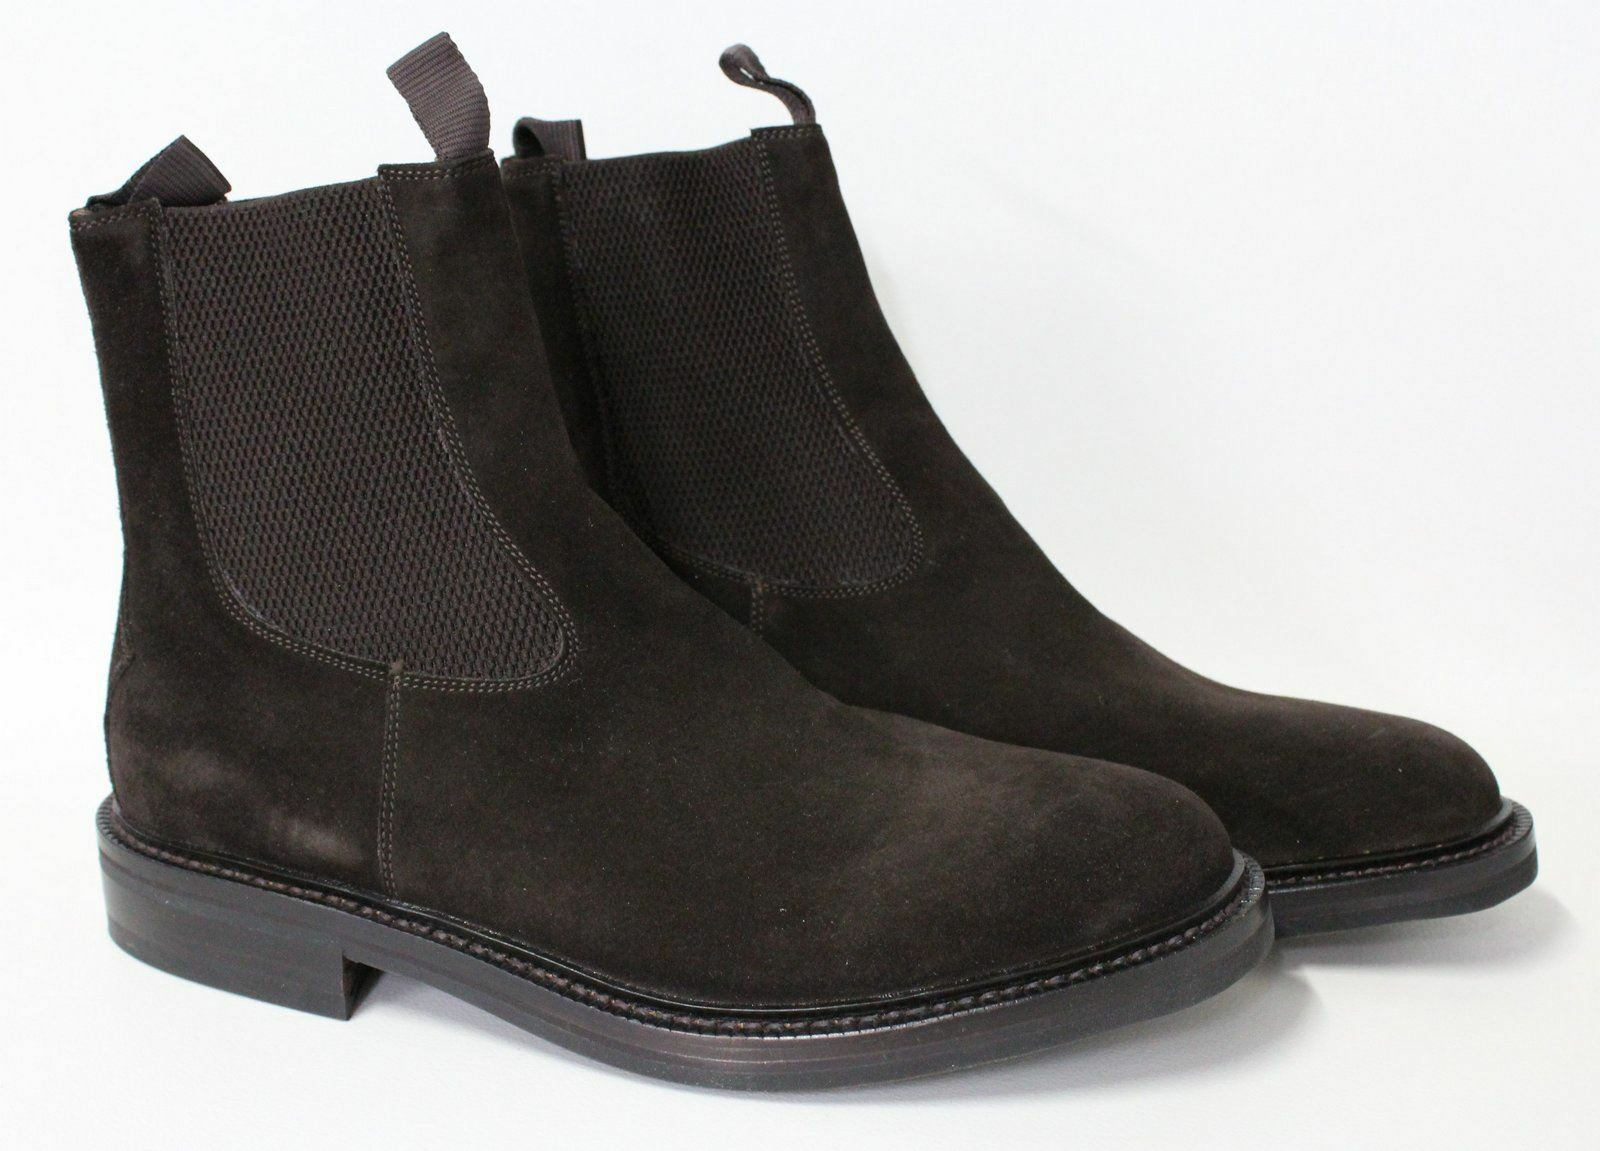 BOTTI Men's Chocolate Brown Suede Round Toe Pull On Chelsea Ankle Boots UK10